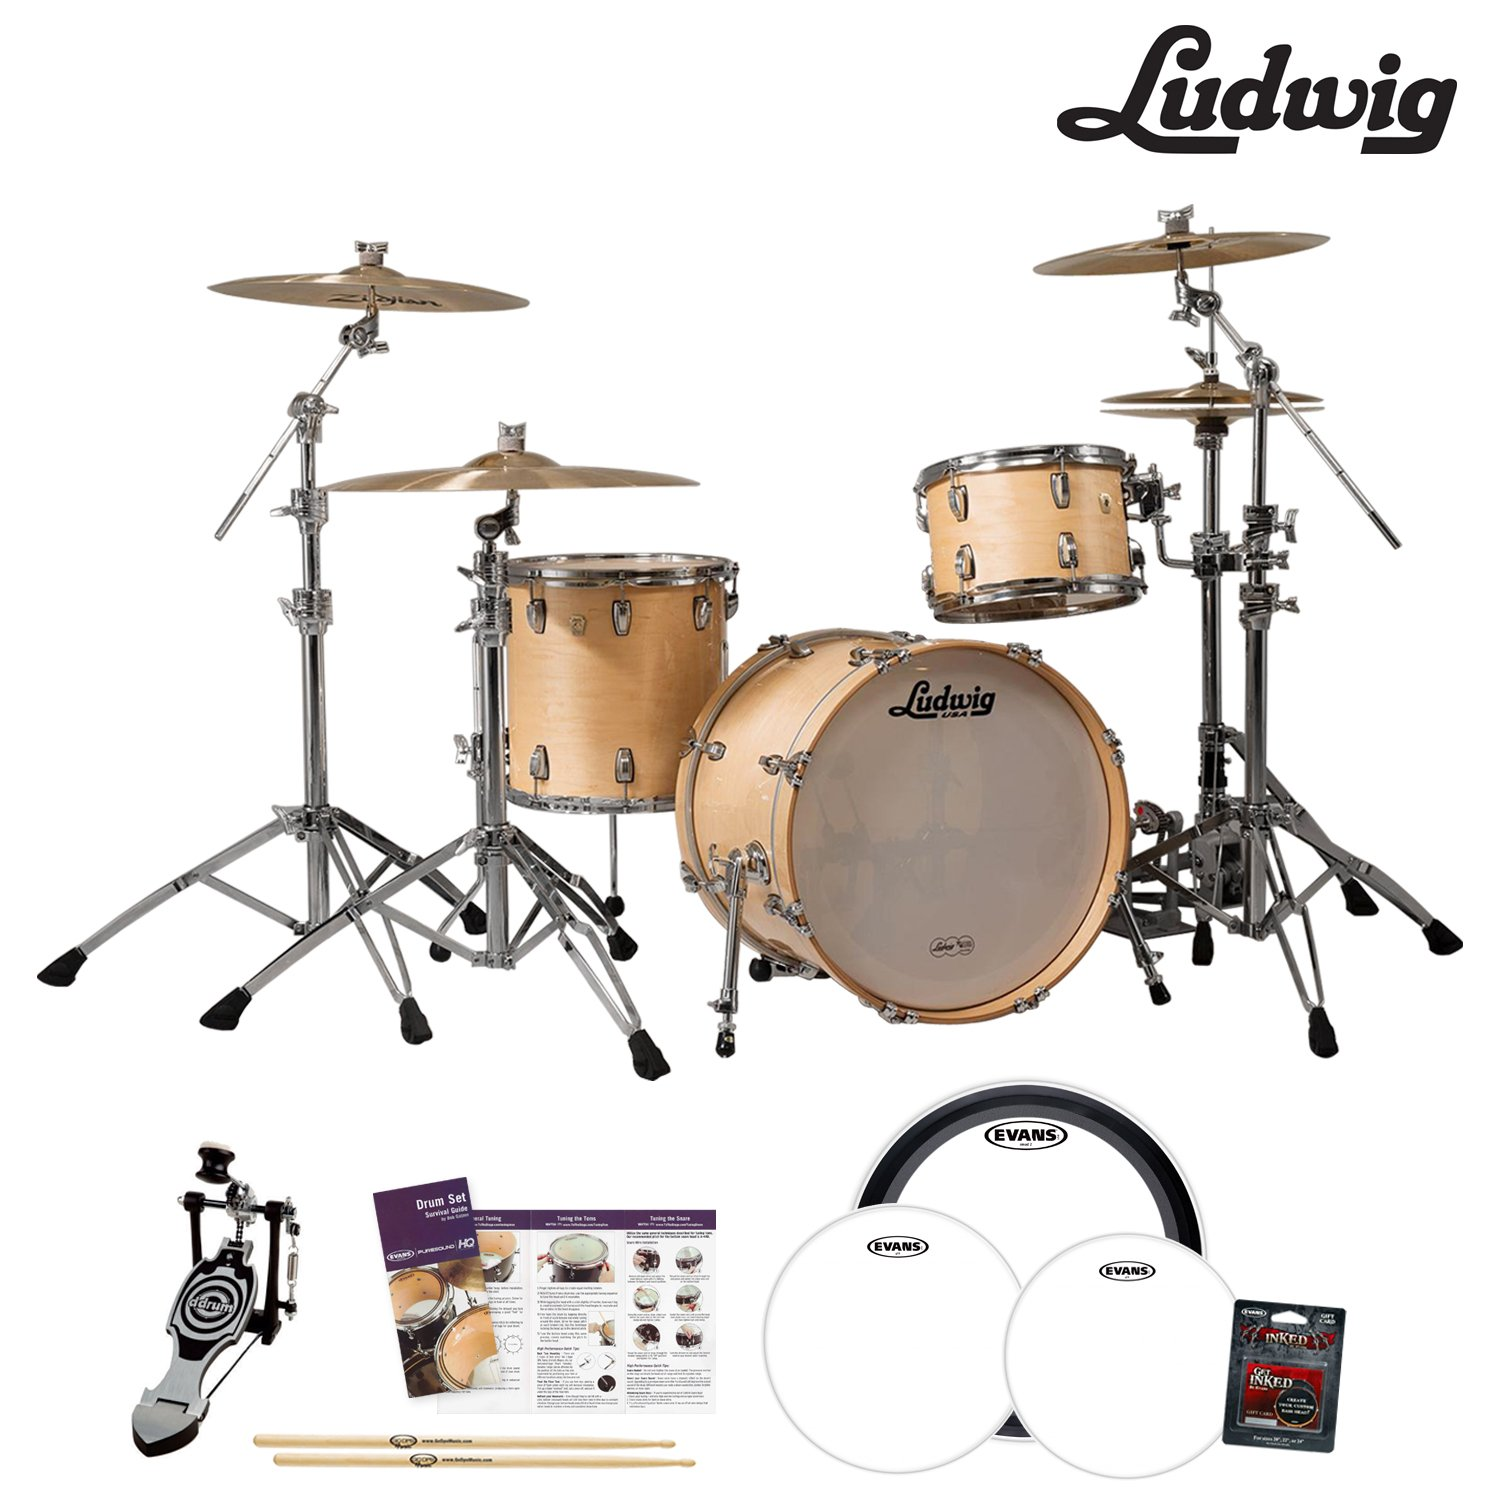 Ludwig USA Classic Maple 3 Pc Drum Kit L8303AX0N